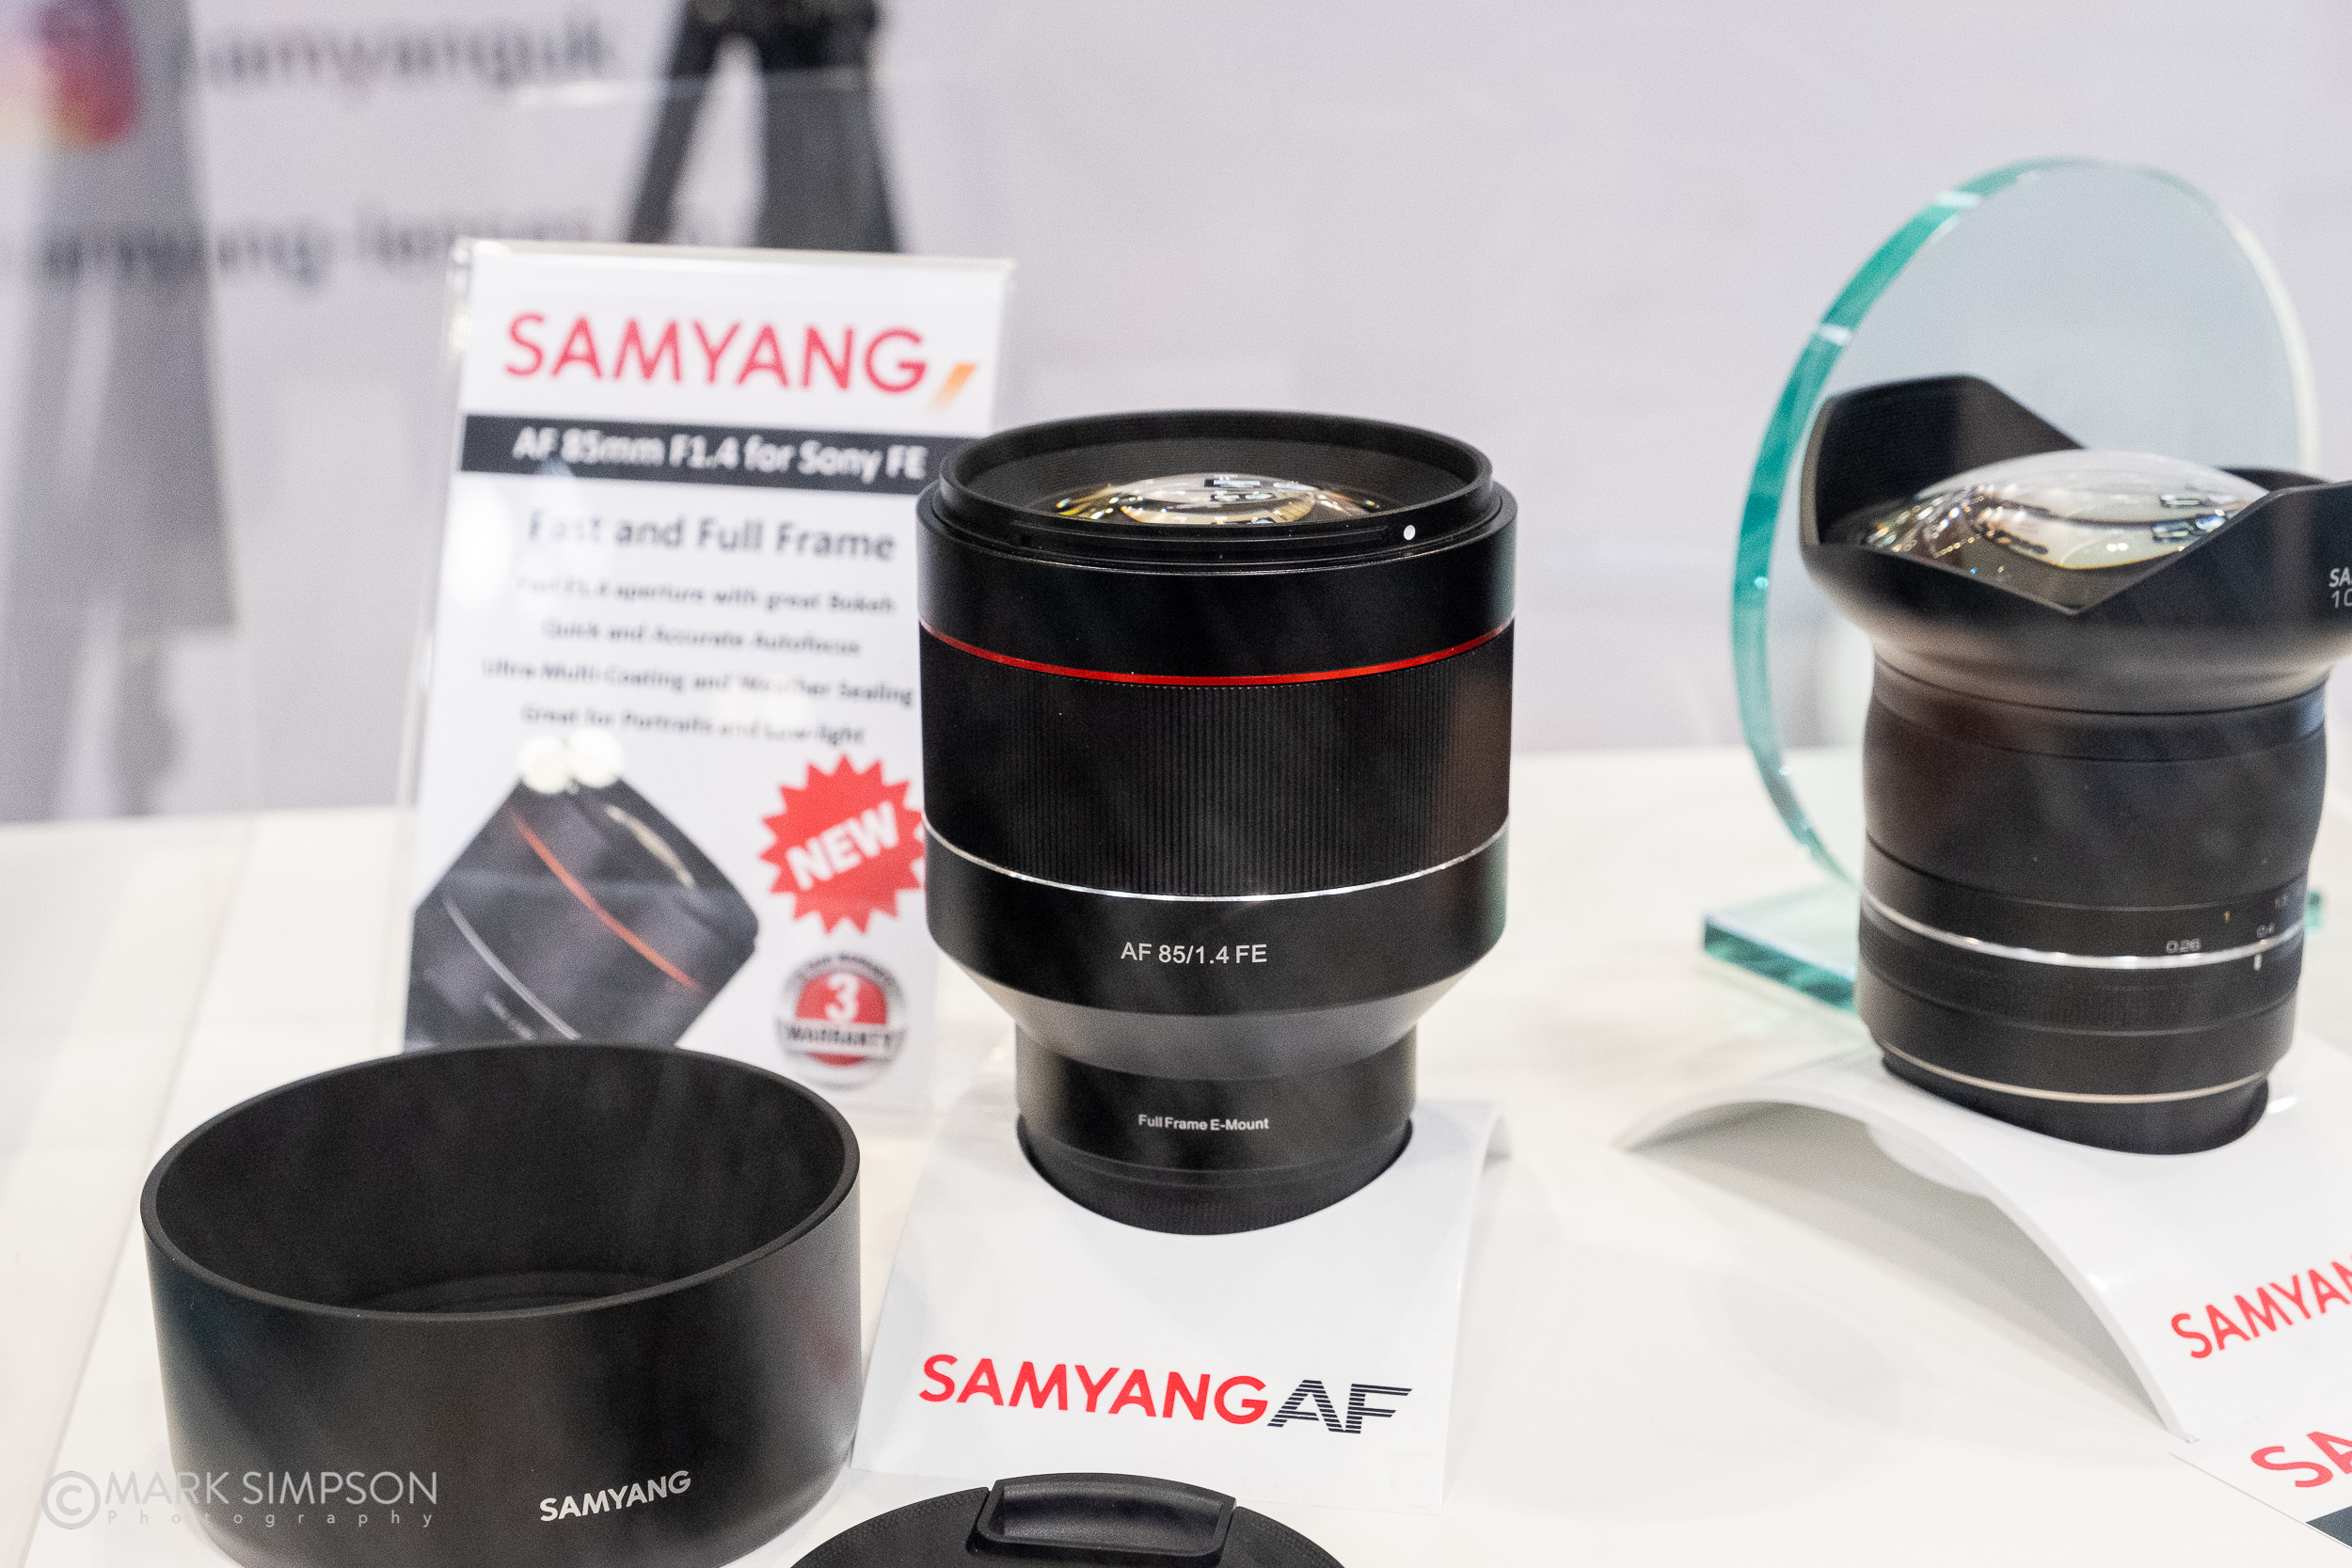 New Samyang lenses, the AF 85mm f/1.4 for Sony FE and the XP 10mm f/3.5 for Canon EOS. (FujiFilm X-T2, Fujinon XF16-55mmF2.8 R LM WR)